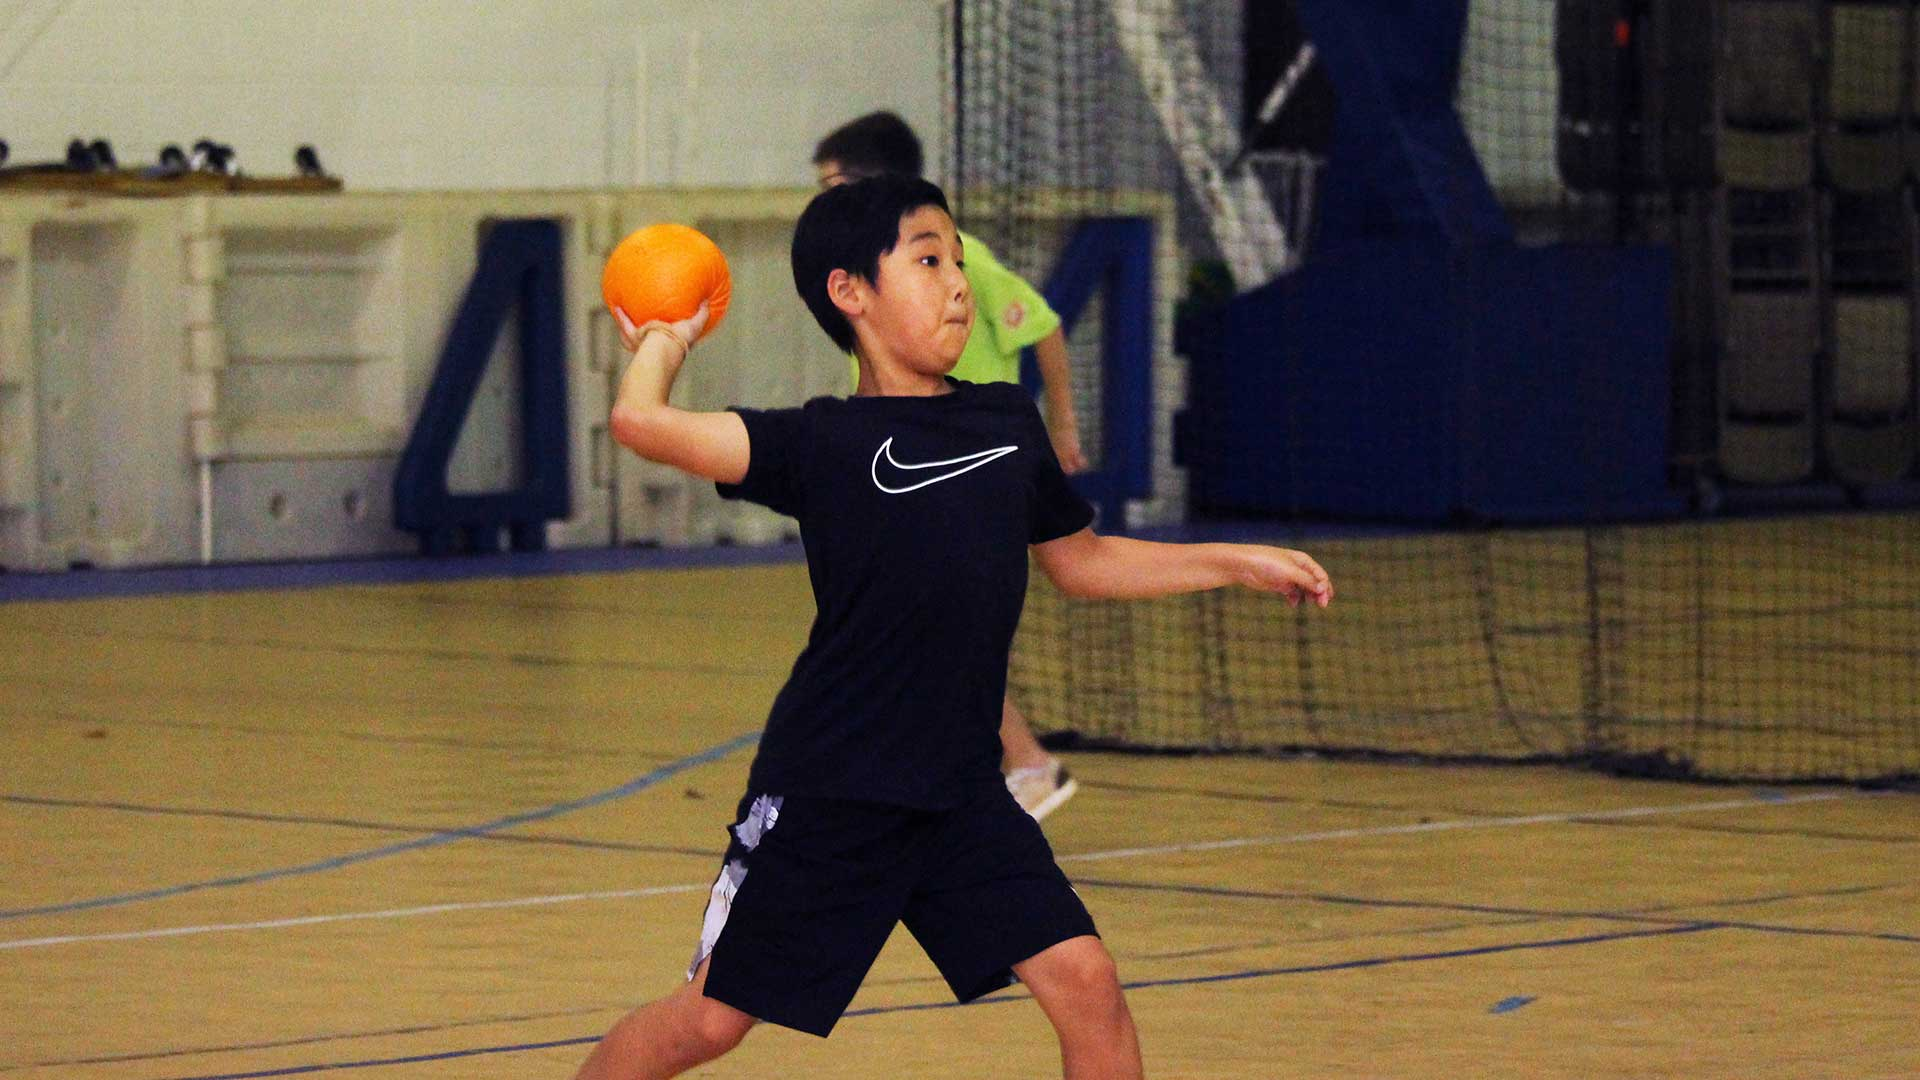 Young boy throwing a ball